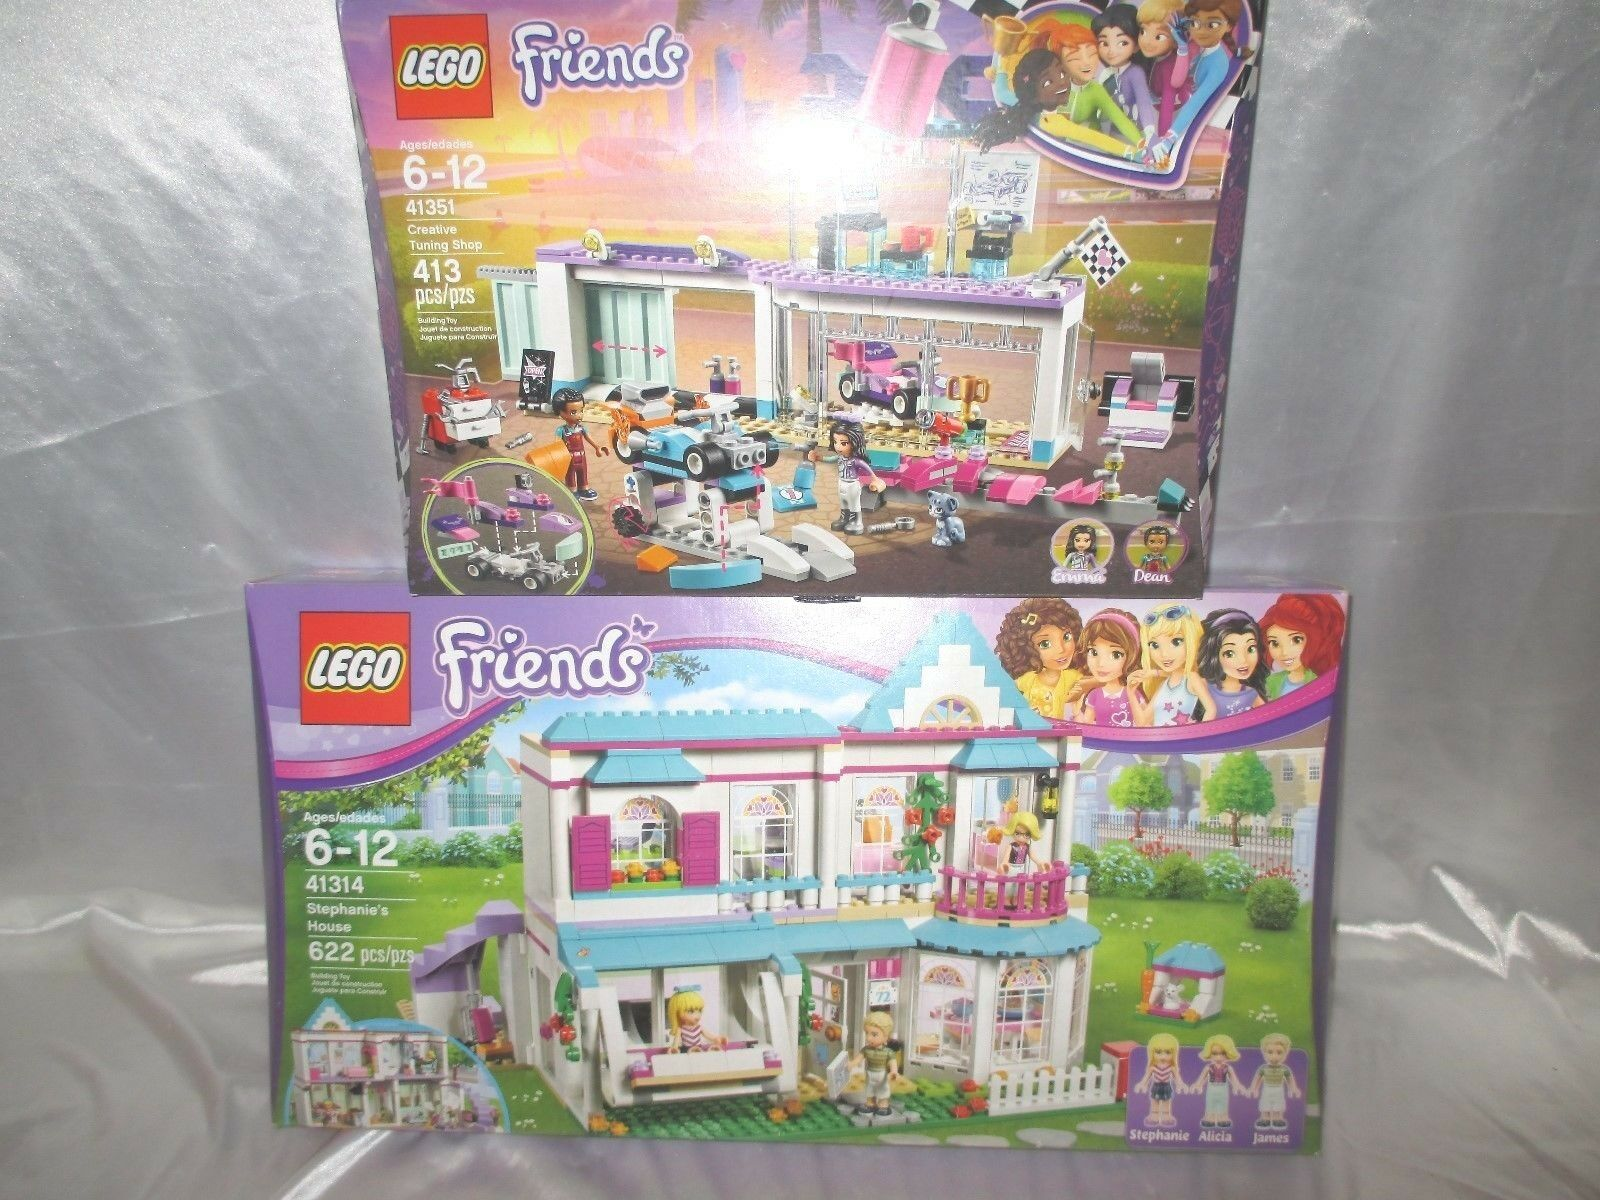 Lego Friends 41314 Stephanie's House & 41351 Creative Tuning Shop New Unopened